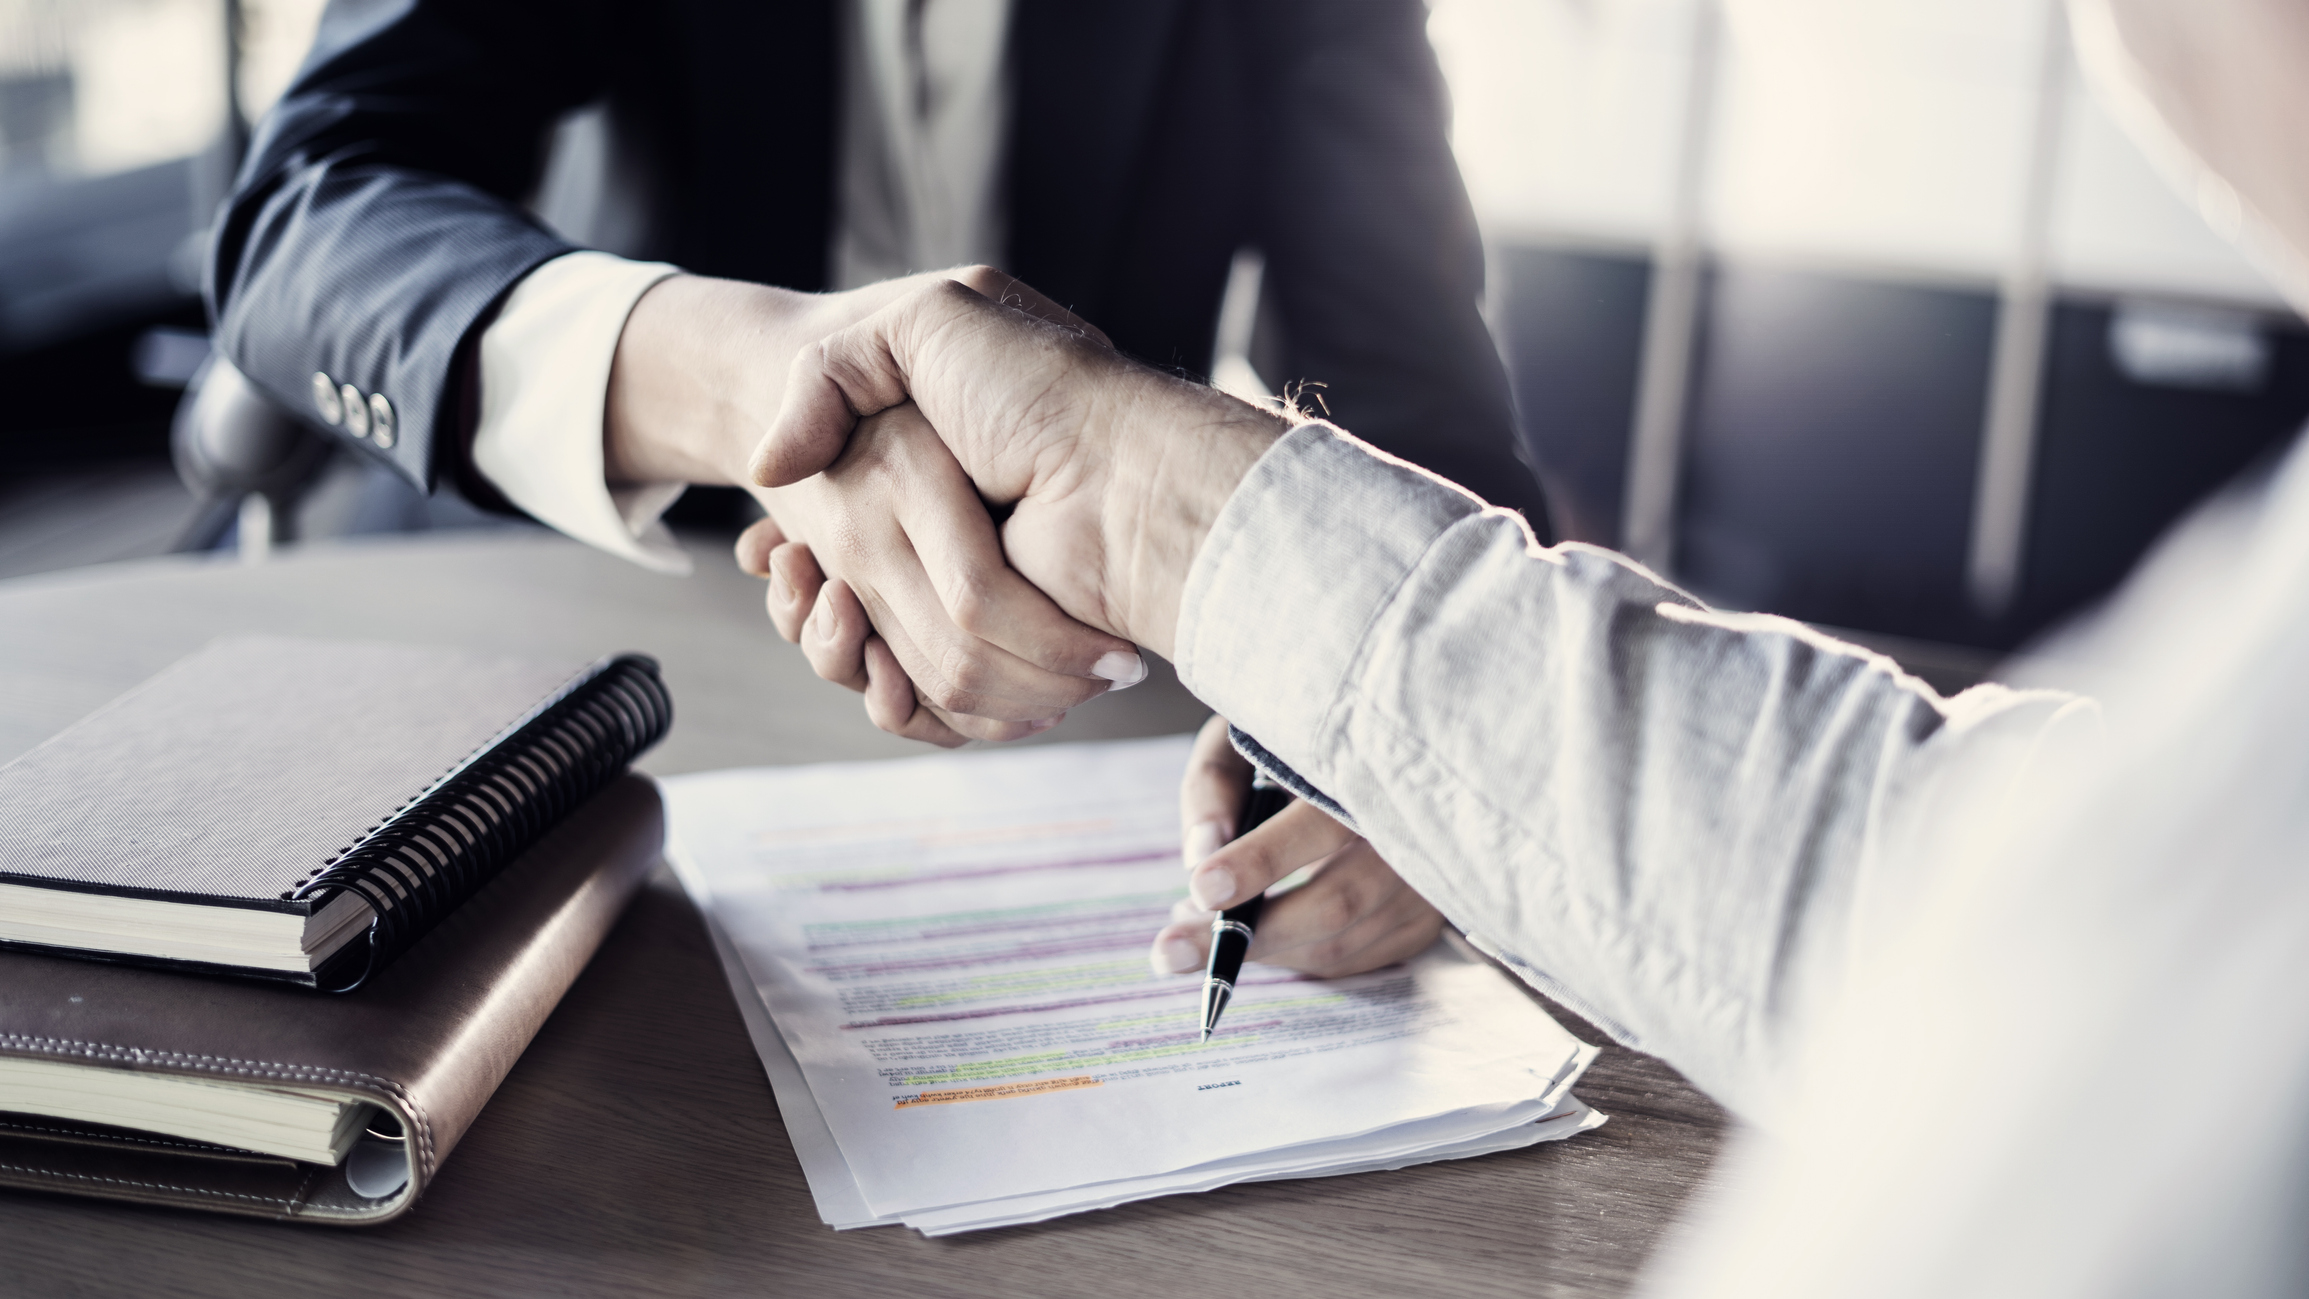 Lae professional shaking hands with client